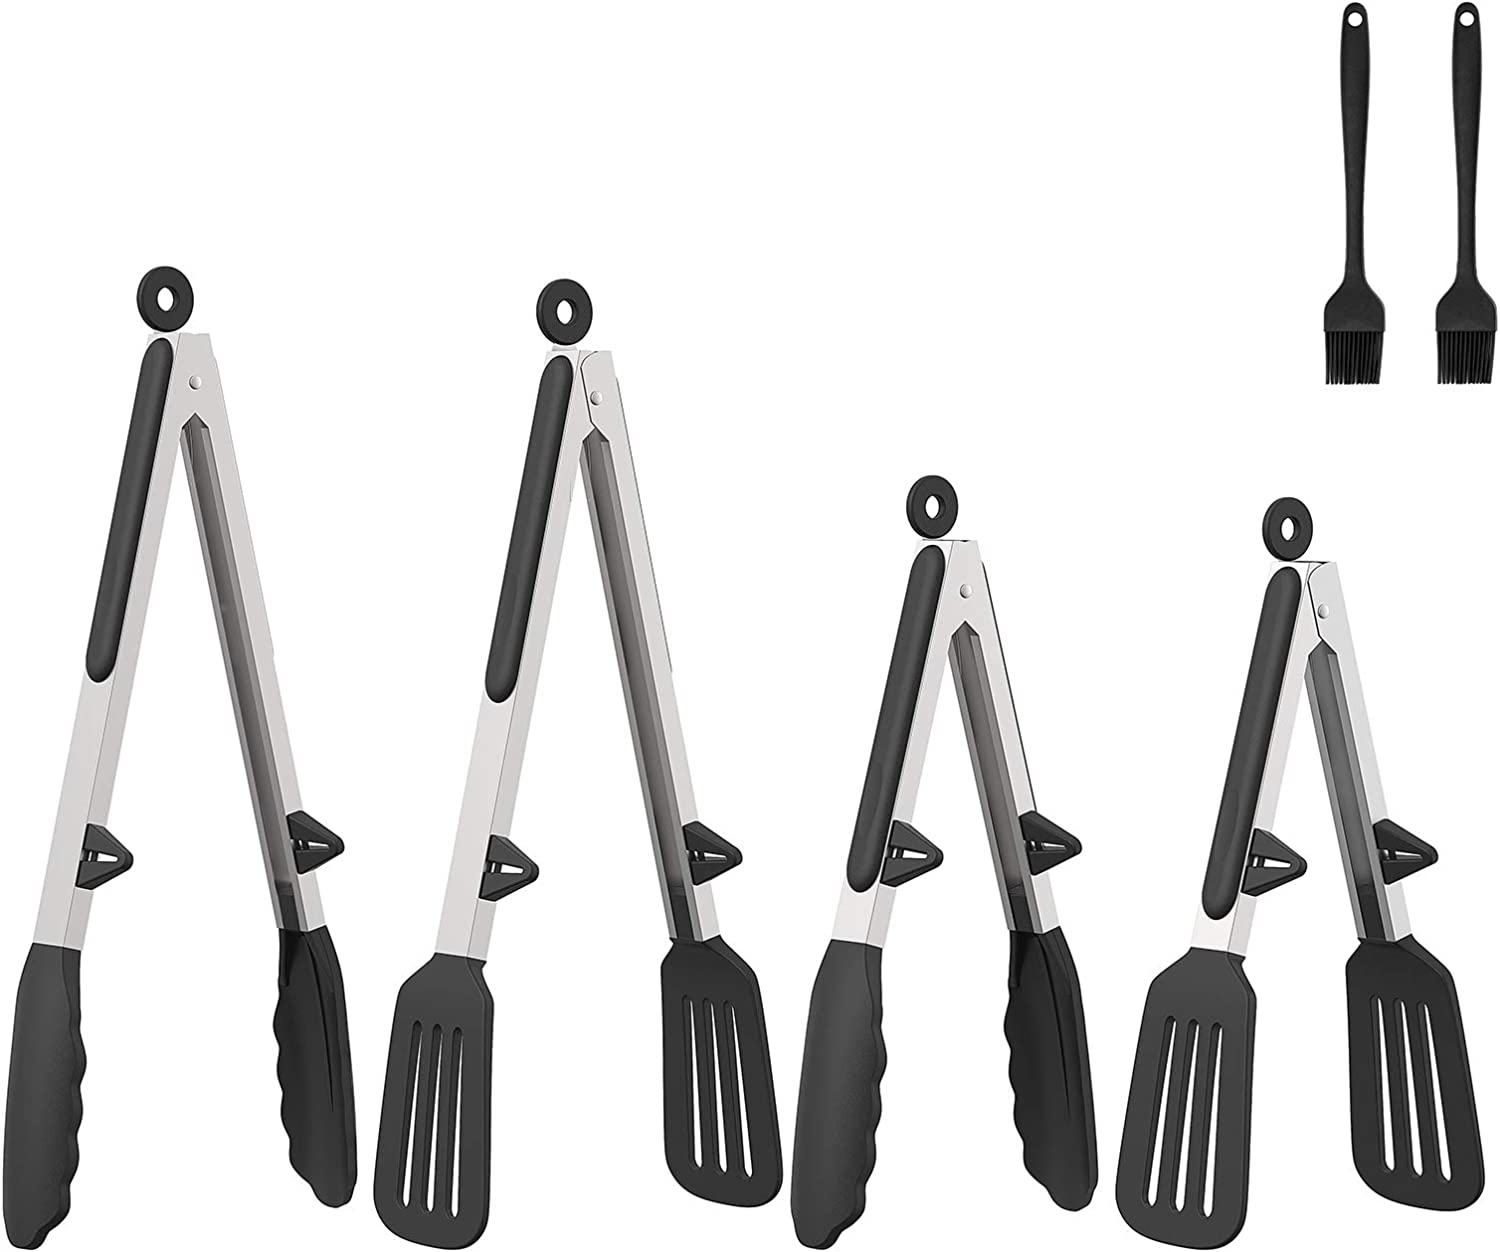 Kitchen Tongs for Cooking - Non-stick Premium Silicone Tips & Locking Stainless Steel Tongs - High Heat Resistant Dishwasher Safe Set 4 Packs for Cooking Salad BBQ Grilling - 13 Inch/10 Inch(Black)